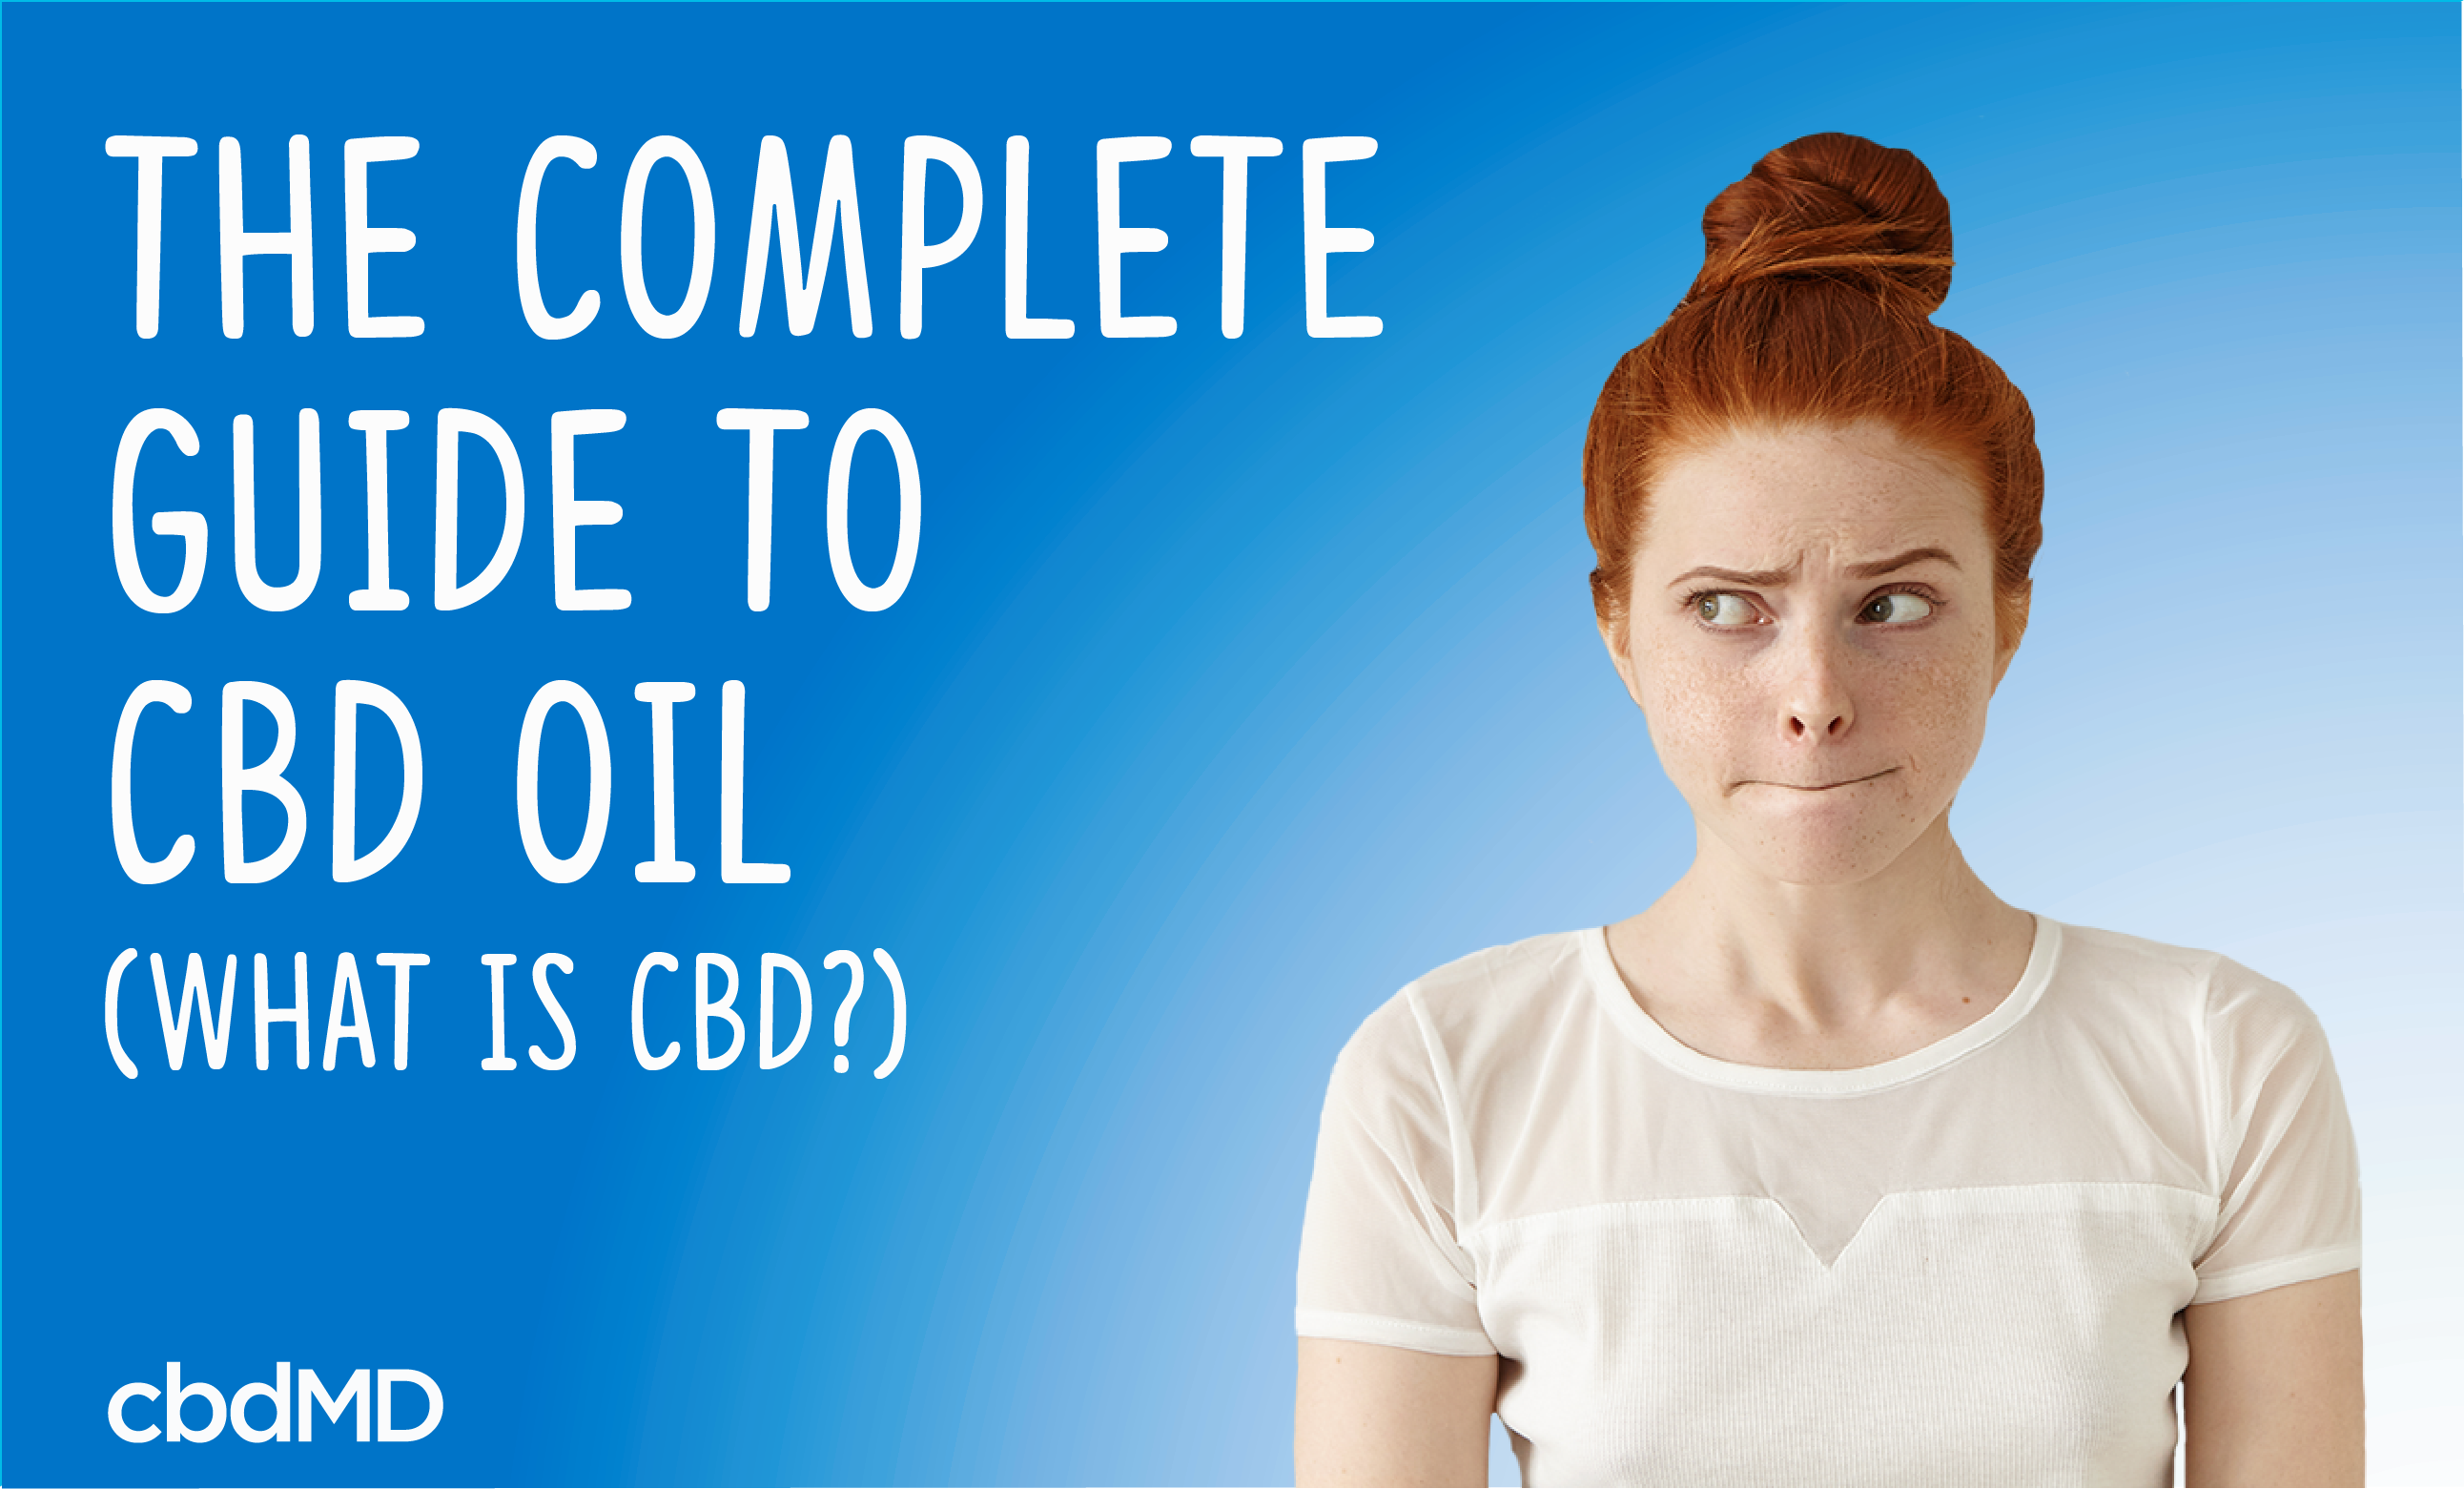 The Complete Guide To CBD Oil (What Is CBD?)